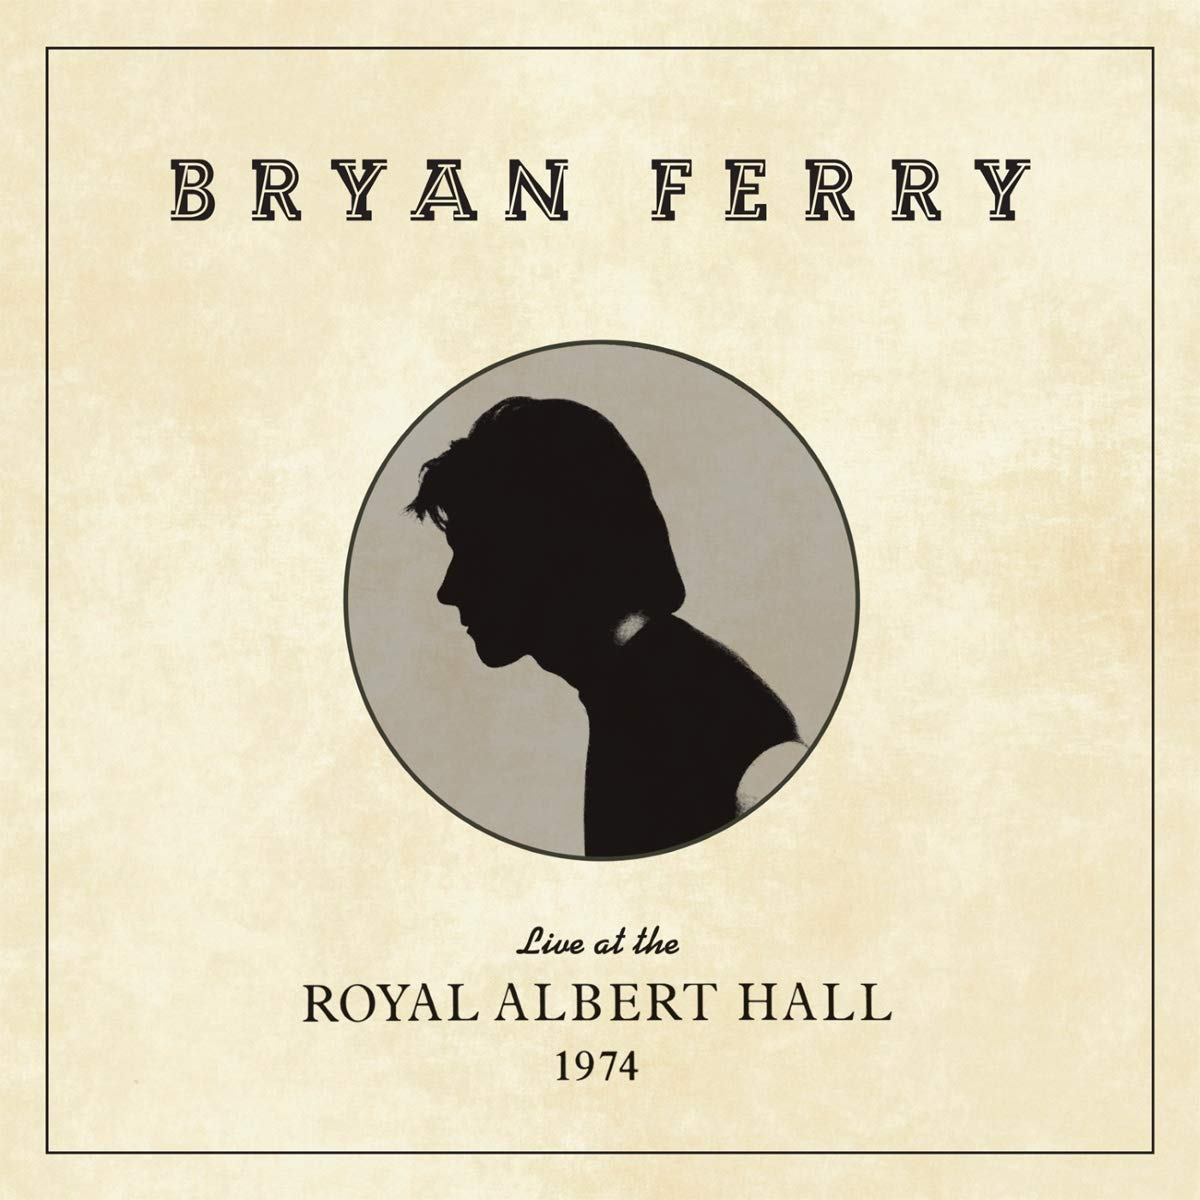 Bryan Ferry / Live at the Royal Albert Hall 1974